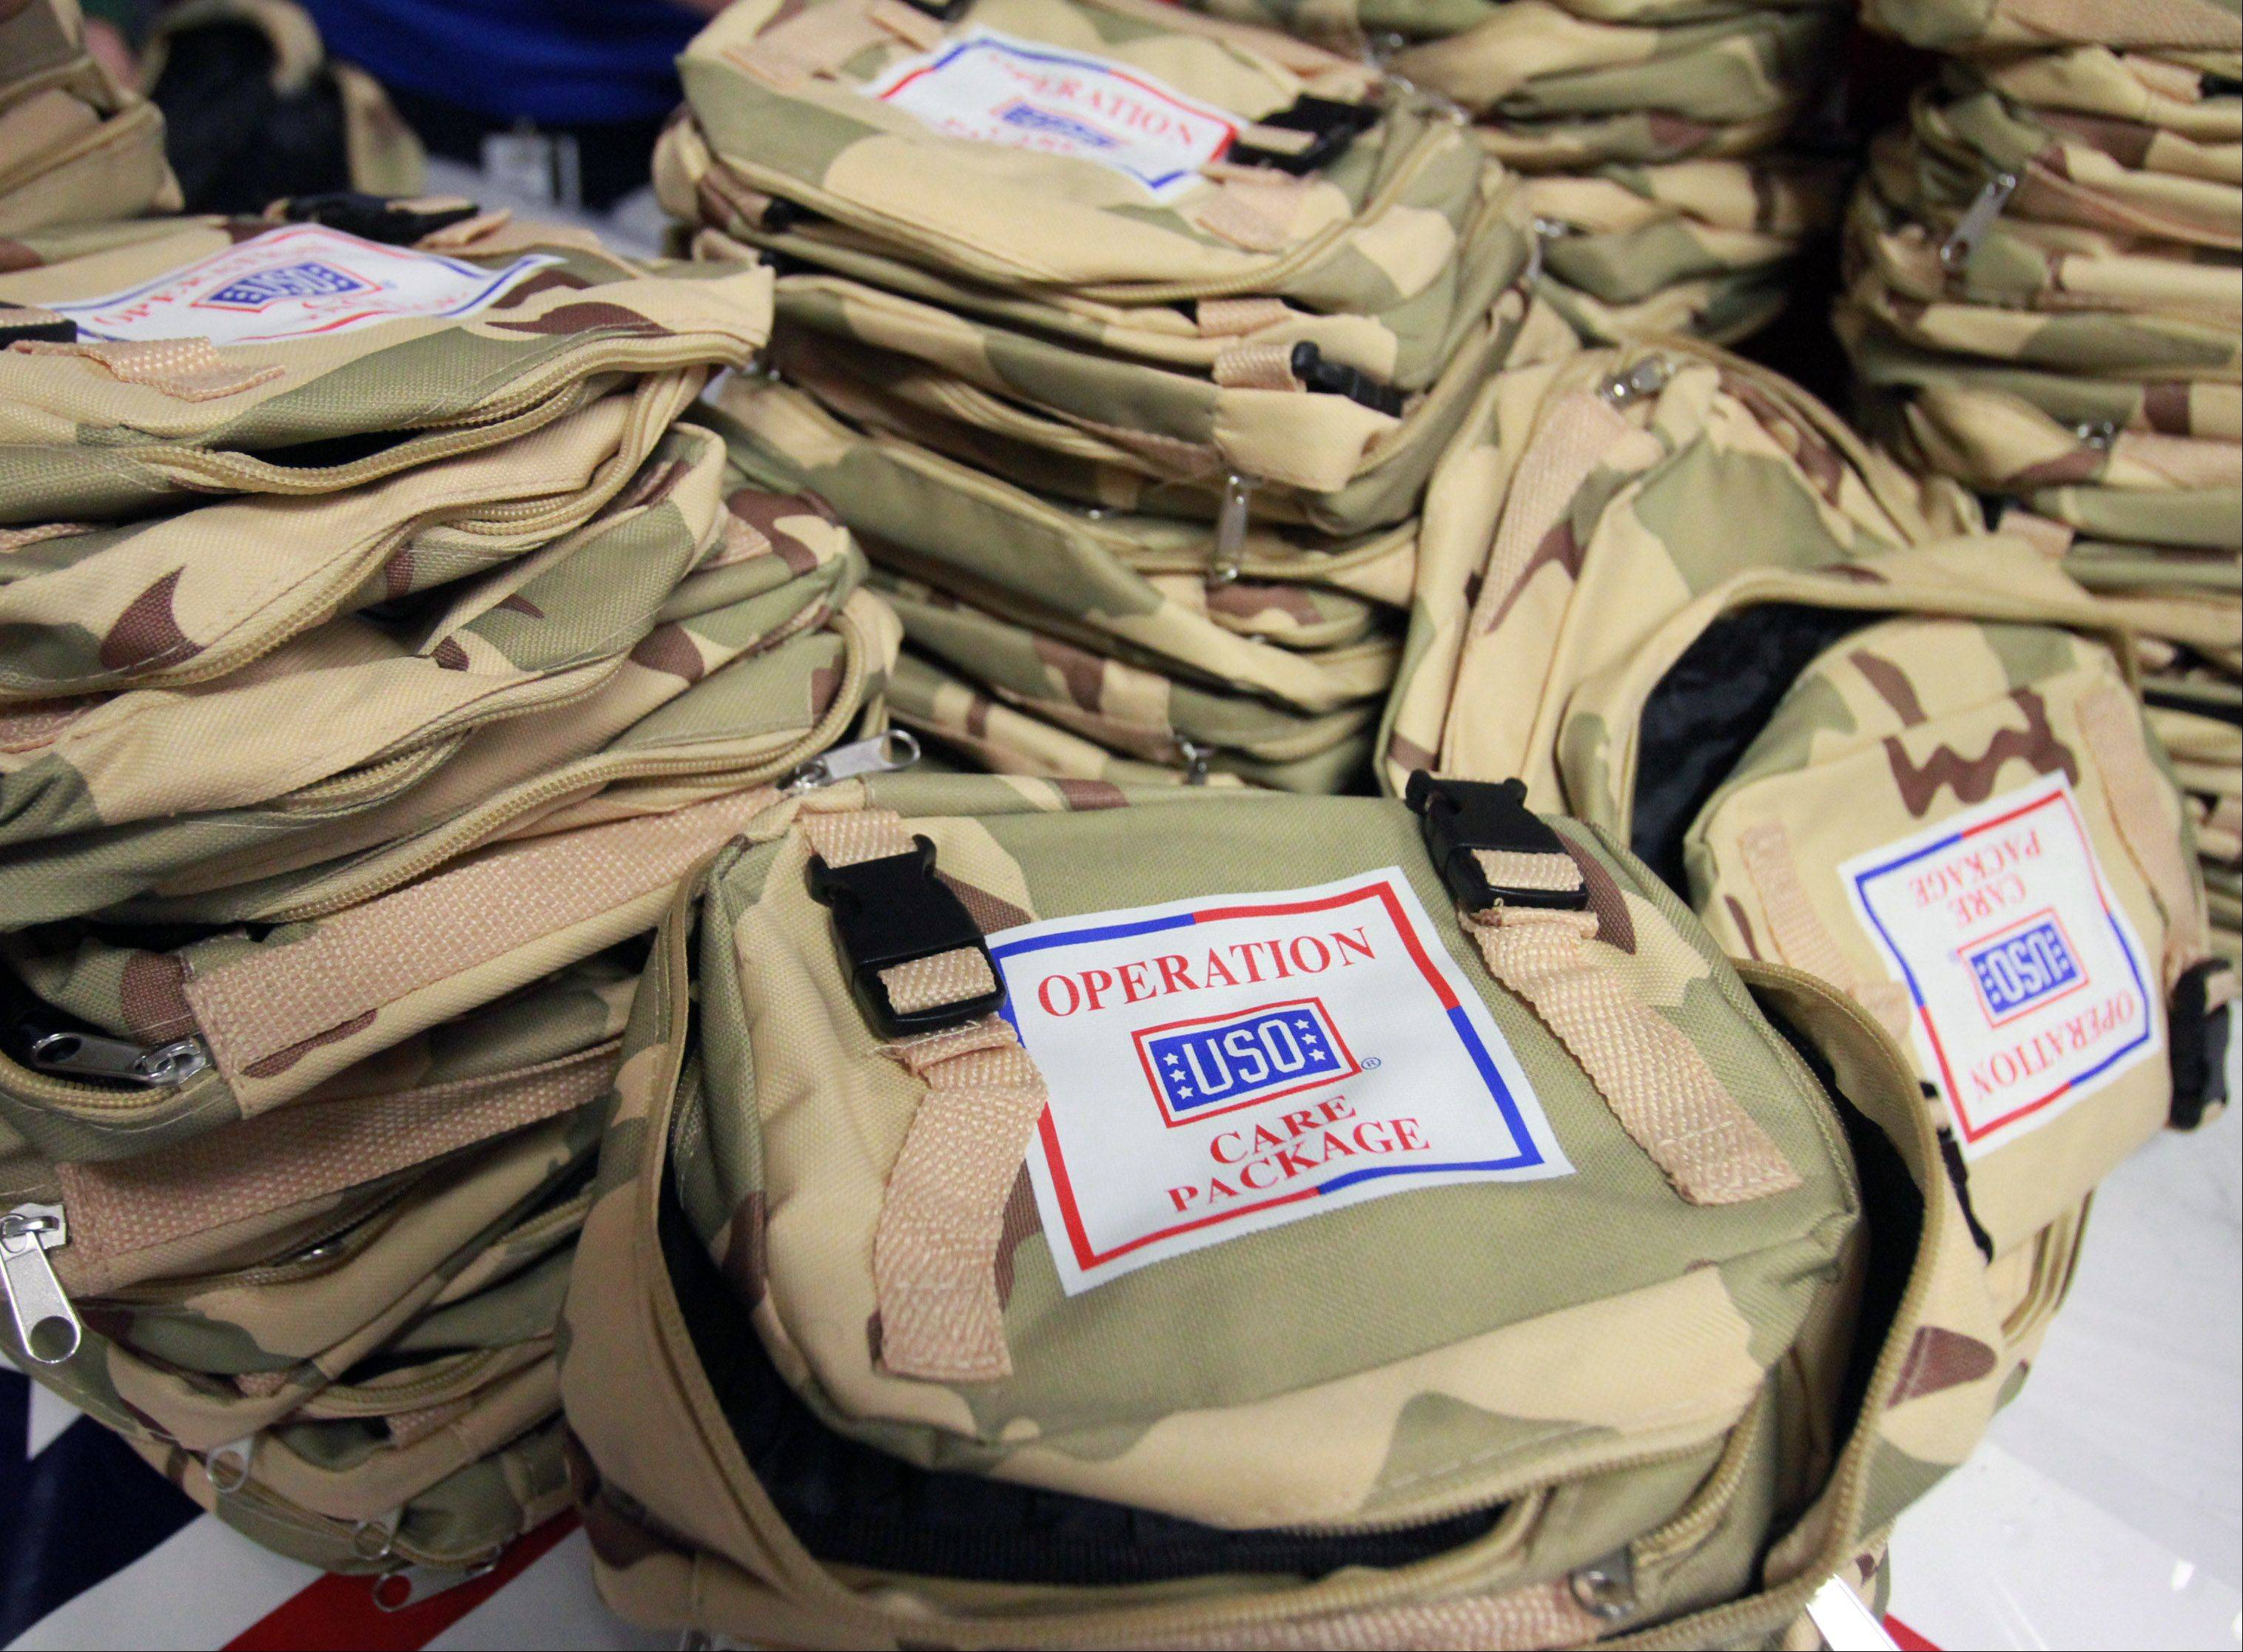 Employees at Northrop Grumman stuffed USO care packages Saturday at the company offices in Rolling Meadows.